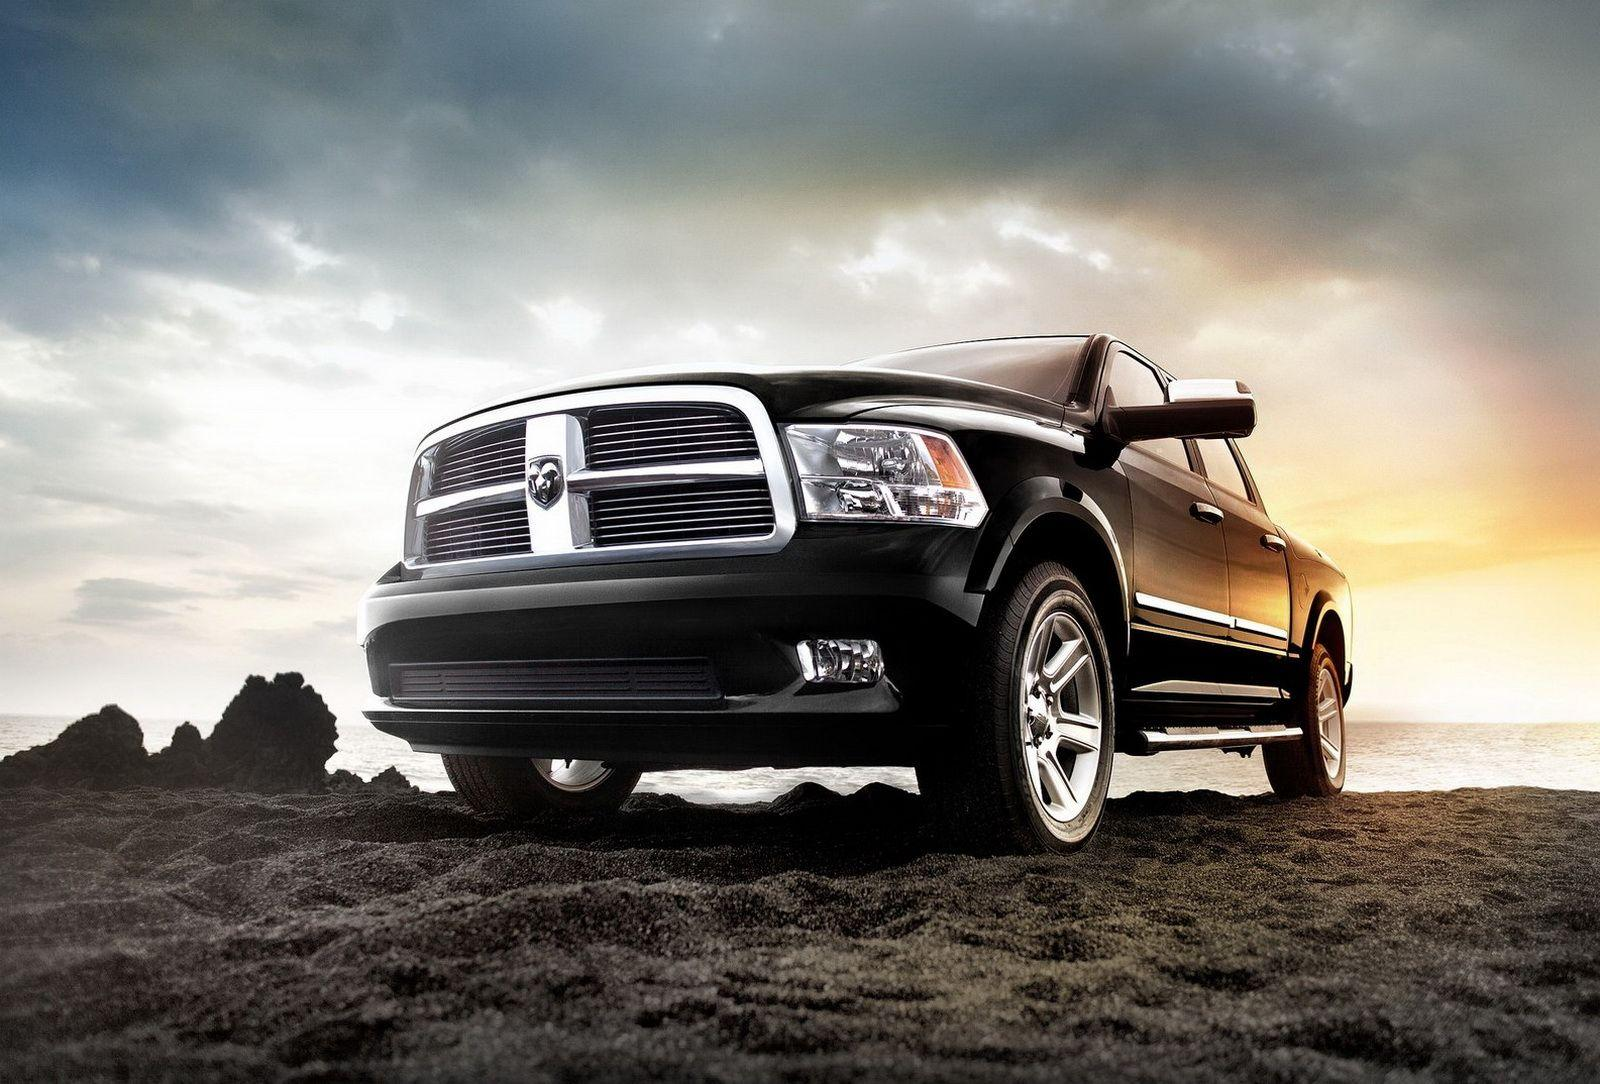 Dodge Ram 1500 Wallpaper and Background Image | 1600x1084 | ID:454666